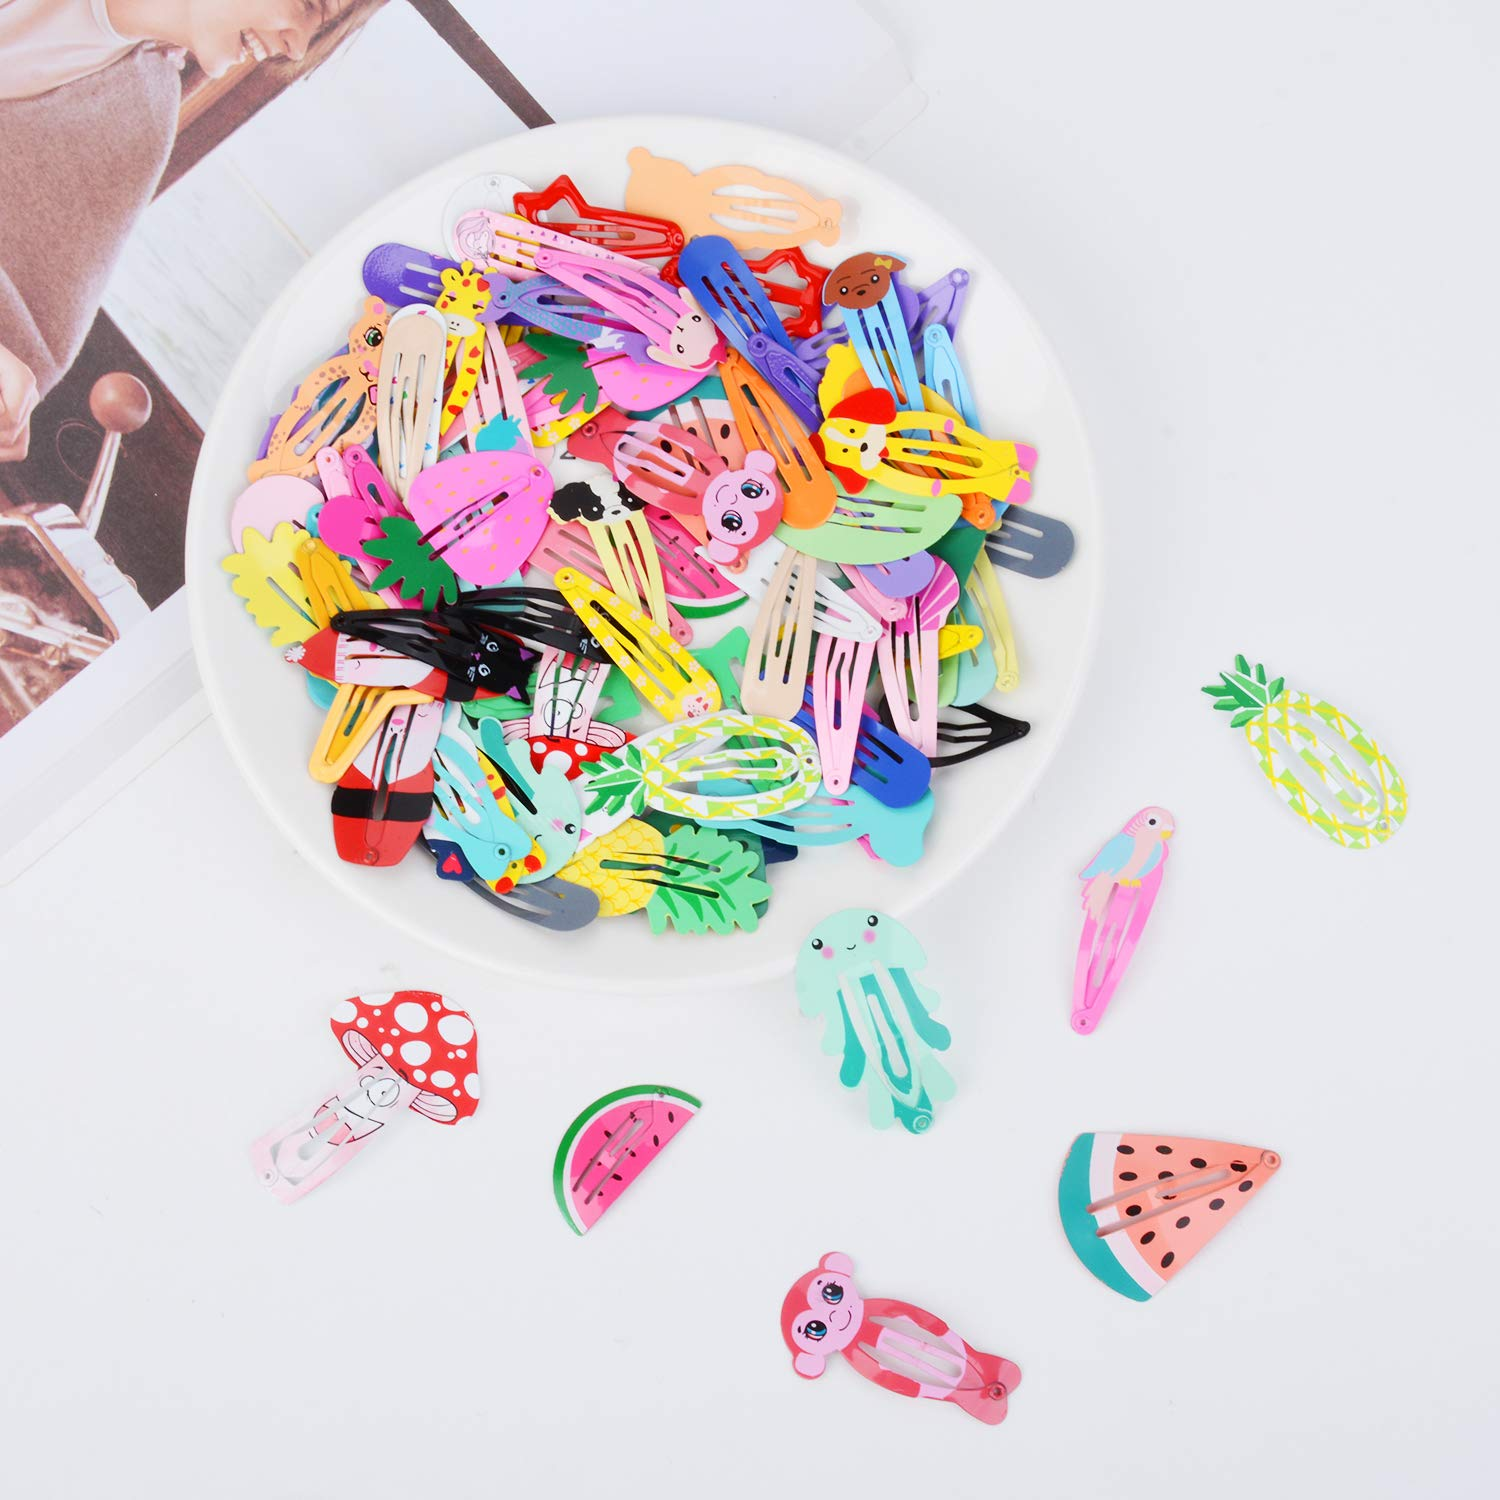 Lovely Hair Clips, Fascigirl 90PCS Animal Pattern Print Candy Color Heart Shape Star Shape Metal Snap No-slip Hair Barrettes Clips for Girls Toddlers Kids Women